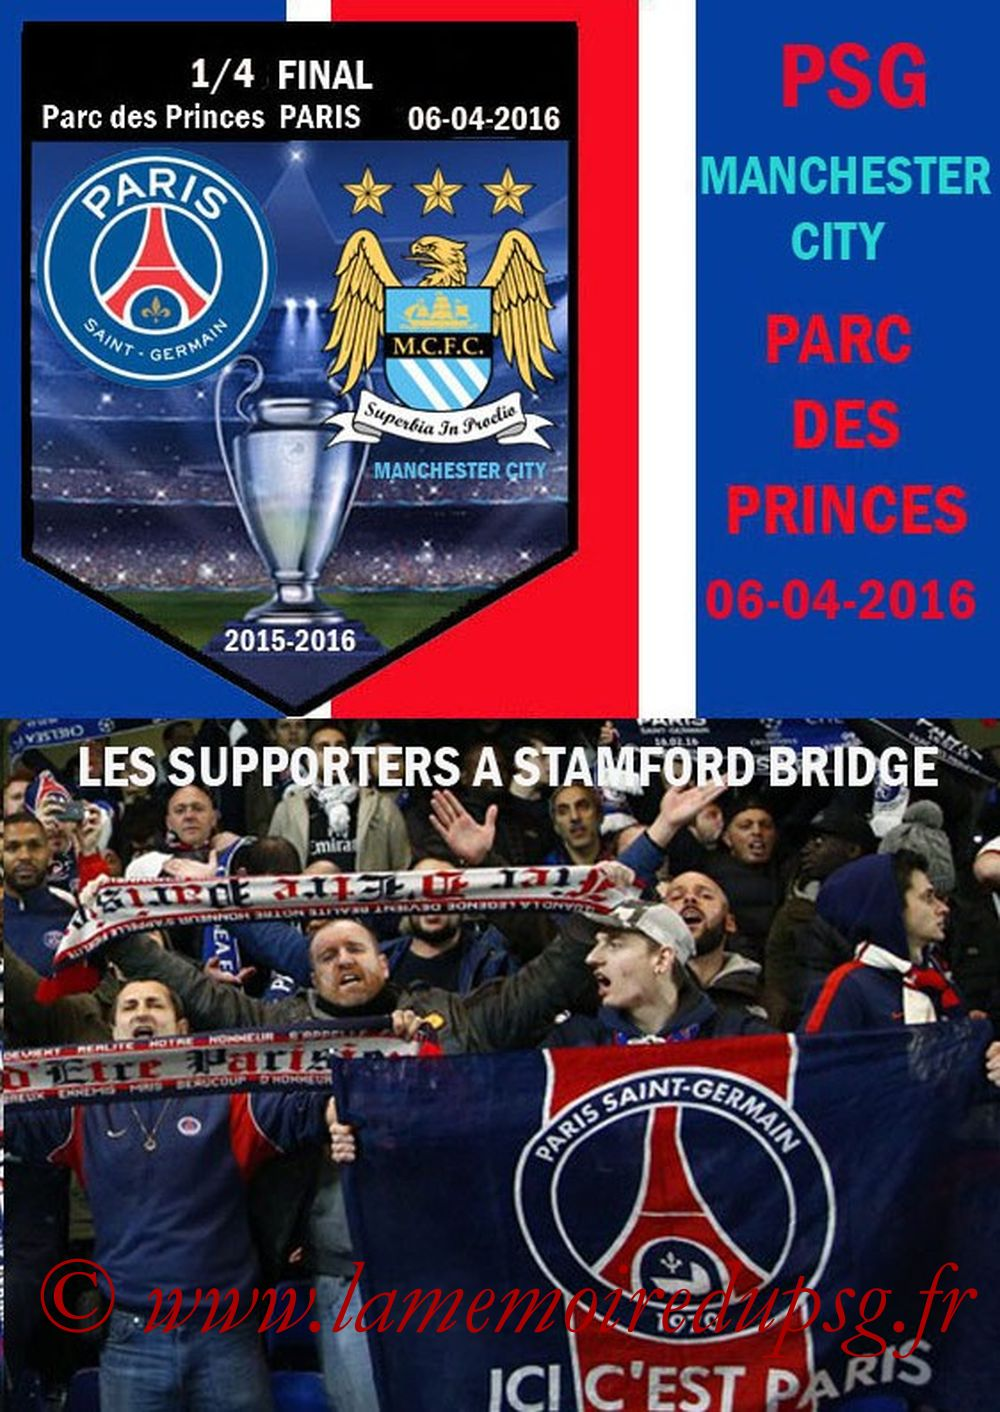 2016-04-06  PSG-Manchester City (Quart C1 Aller, Programme pirate)